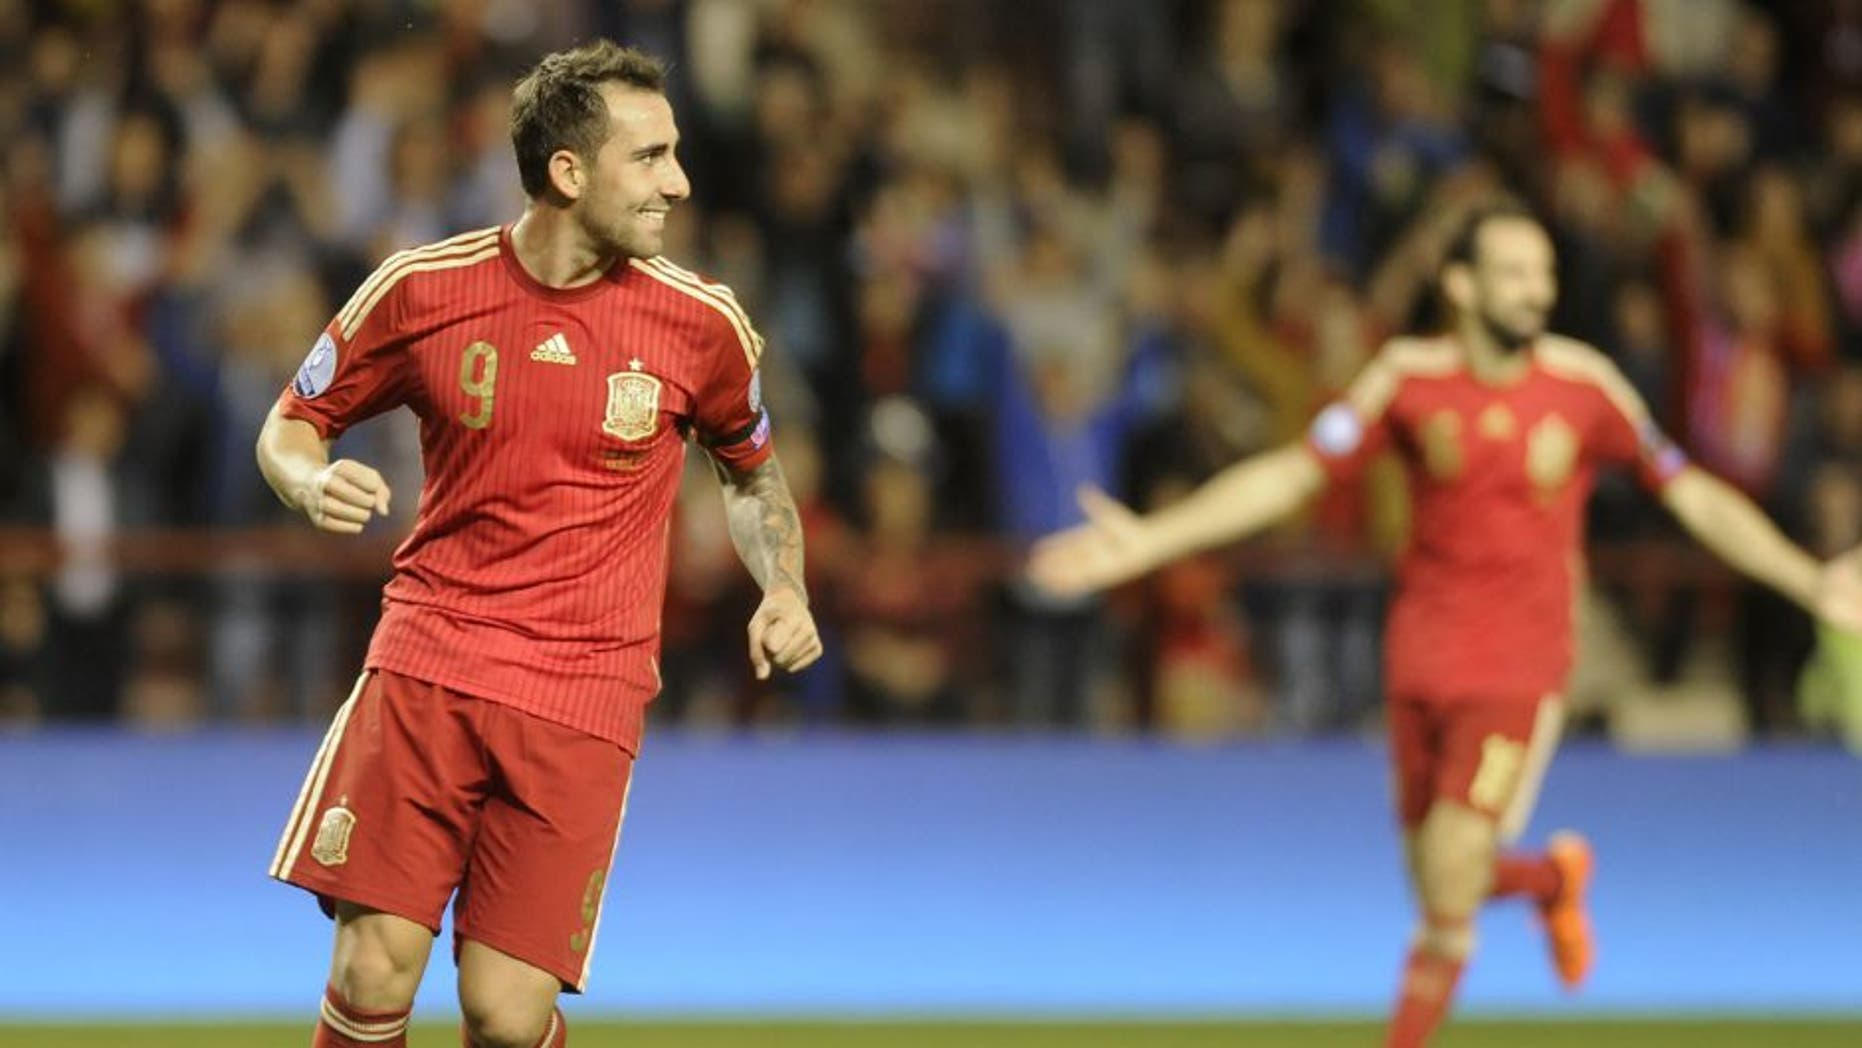 Spain's forward Paco Alcacer (L) celebrates after scoring during the Euro 2016 qualifying football match Spain vs Luxembourg at Las Gaunas stadium in Logrono on October 9, 2015. AFP PHOTO/ ANDER GILLENEA (Photo credit should read ANDER GILLENEA/AFP/Getty Images)